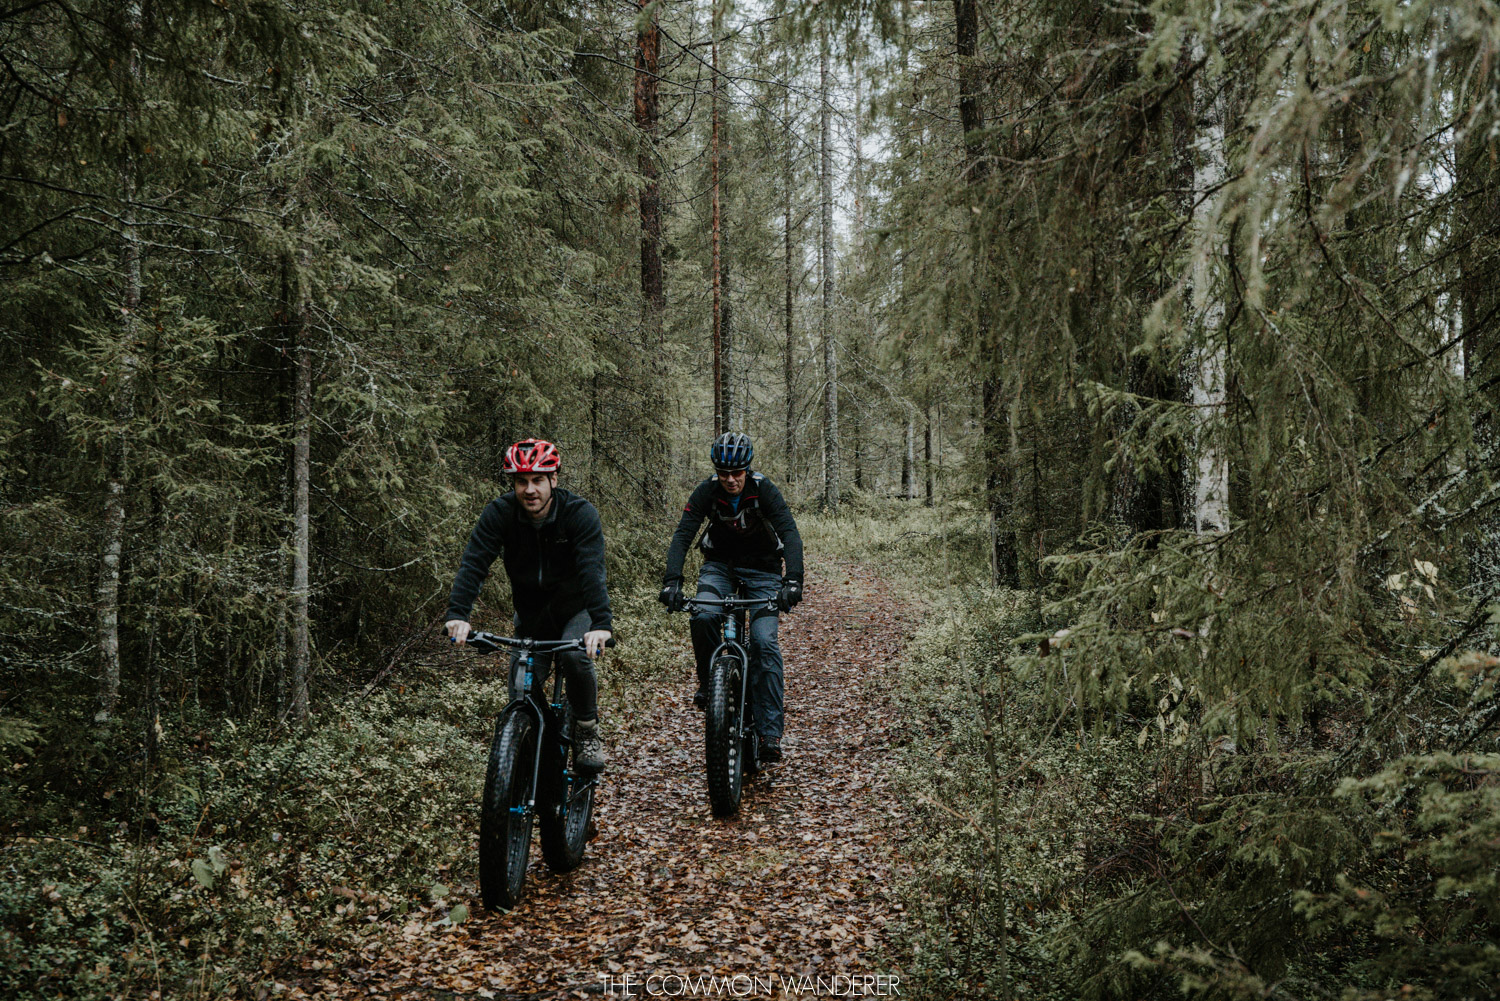 Things to do in Swedish Lapland - Fatbiking through the forest